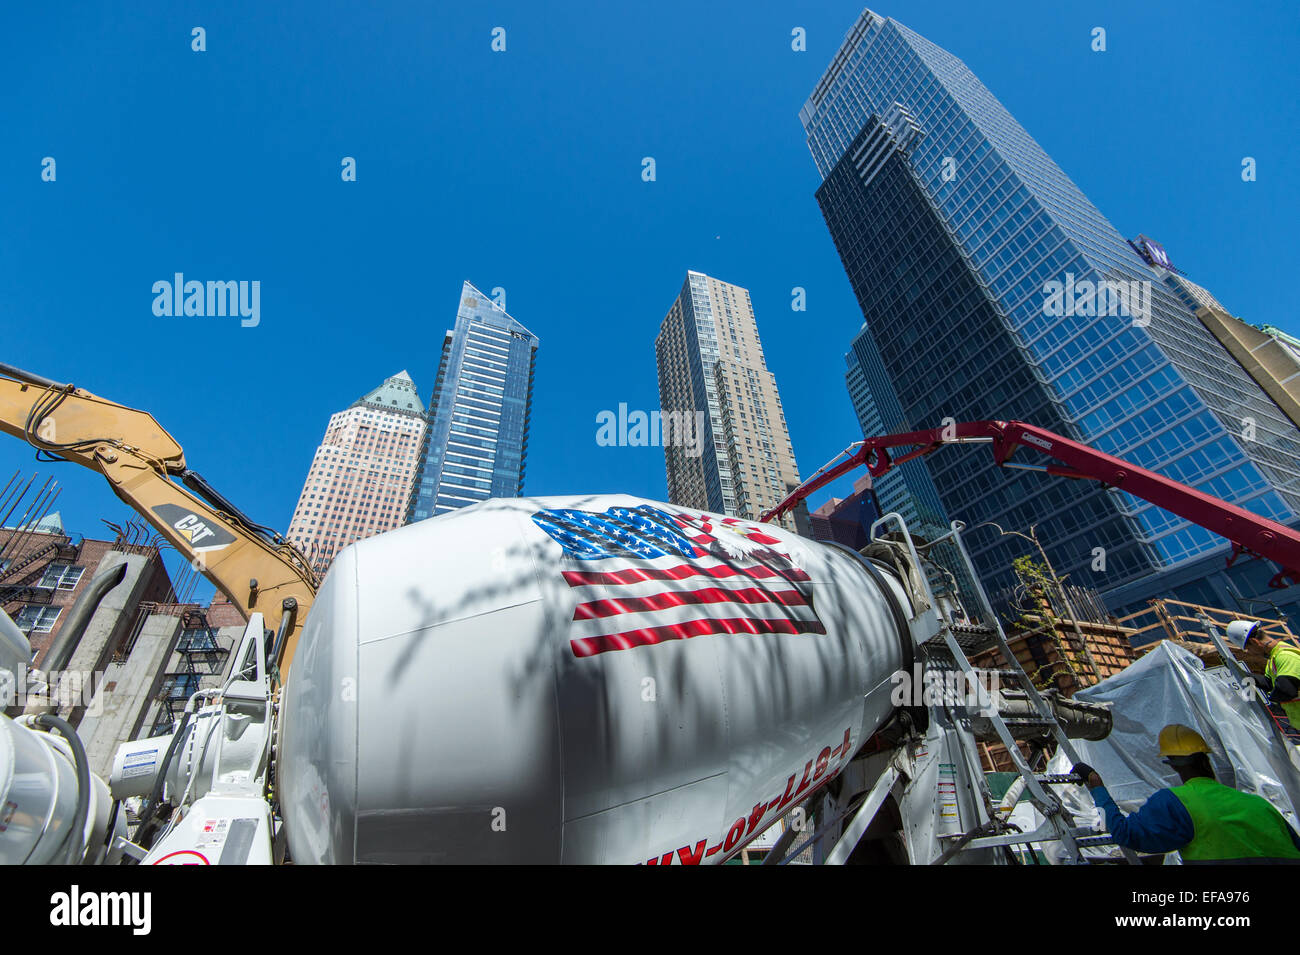 Building America - construction work at Manhattan in New York City, NY, USA - Stock Image